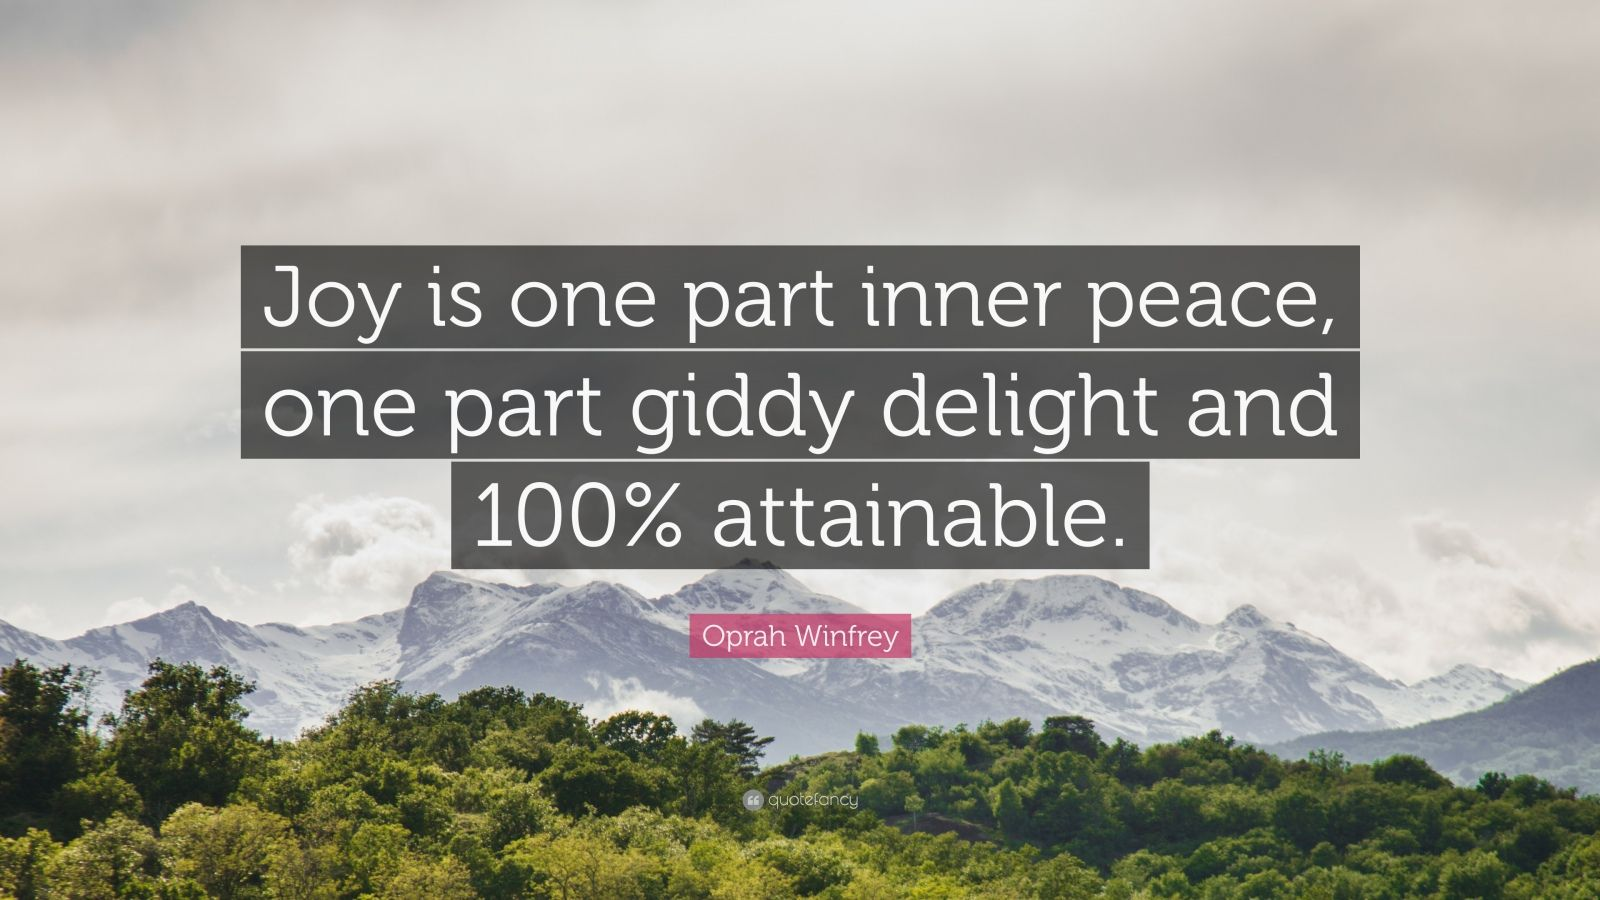 """Oprah Winfrey Quote: """"Joy is one part inner peace, one part giddy delight and 100% attainable."""""""